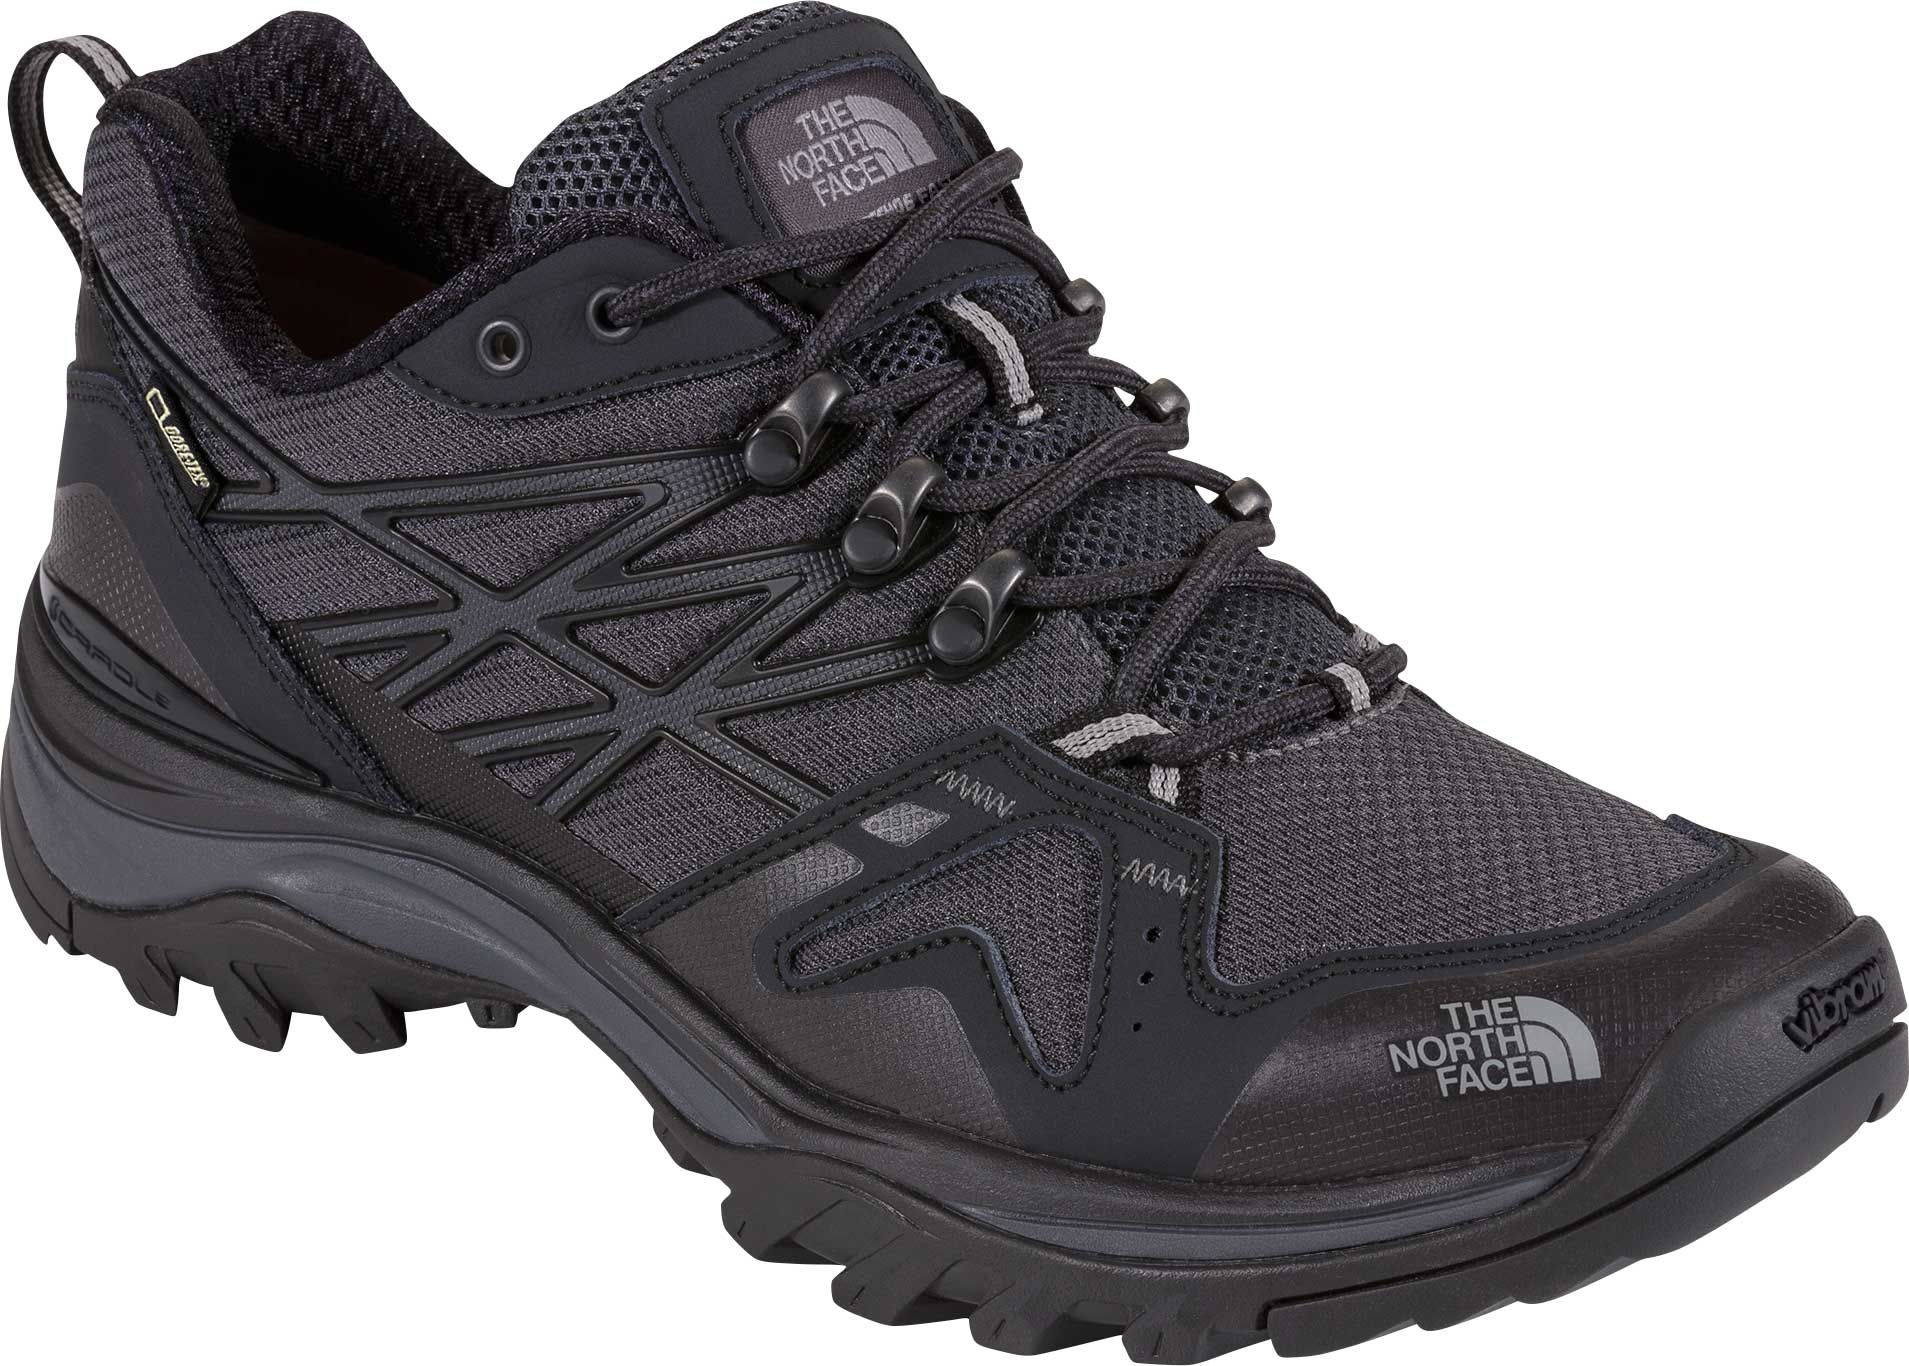 North Face Trekking Shoes Review